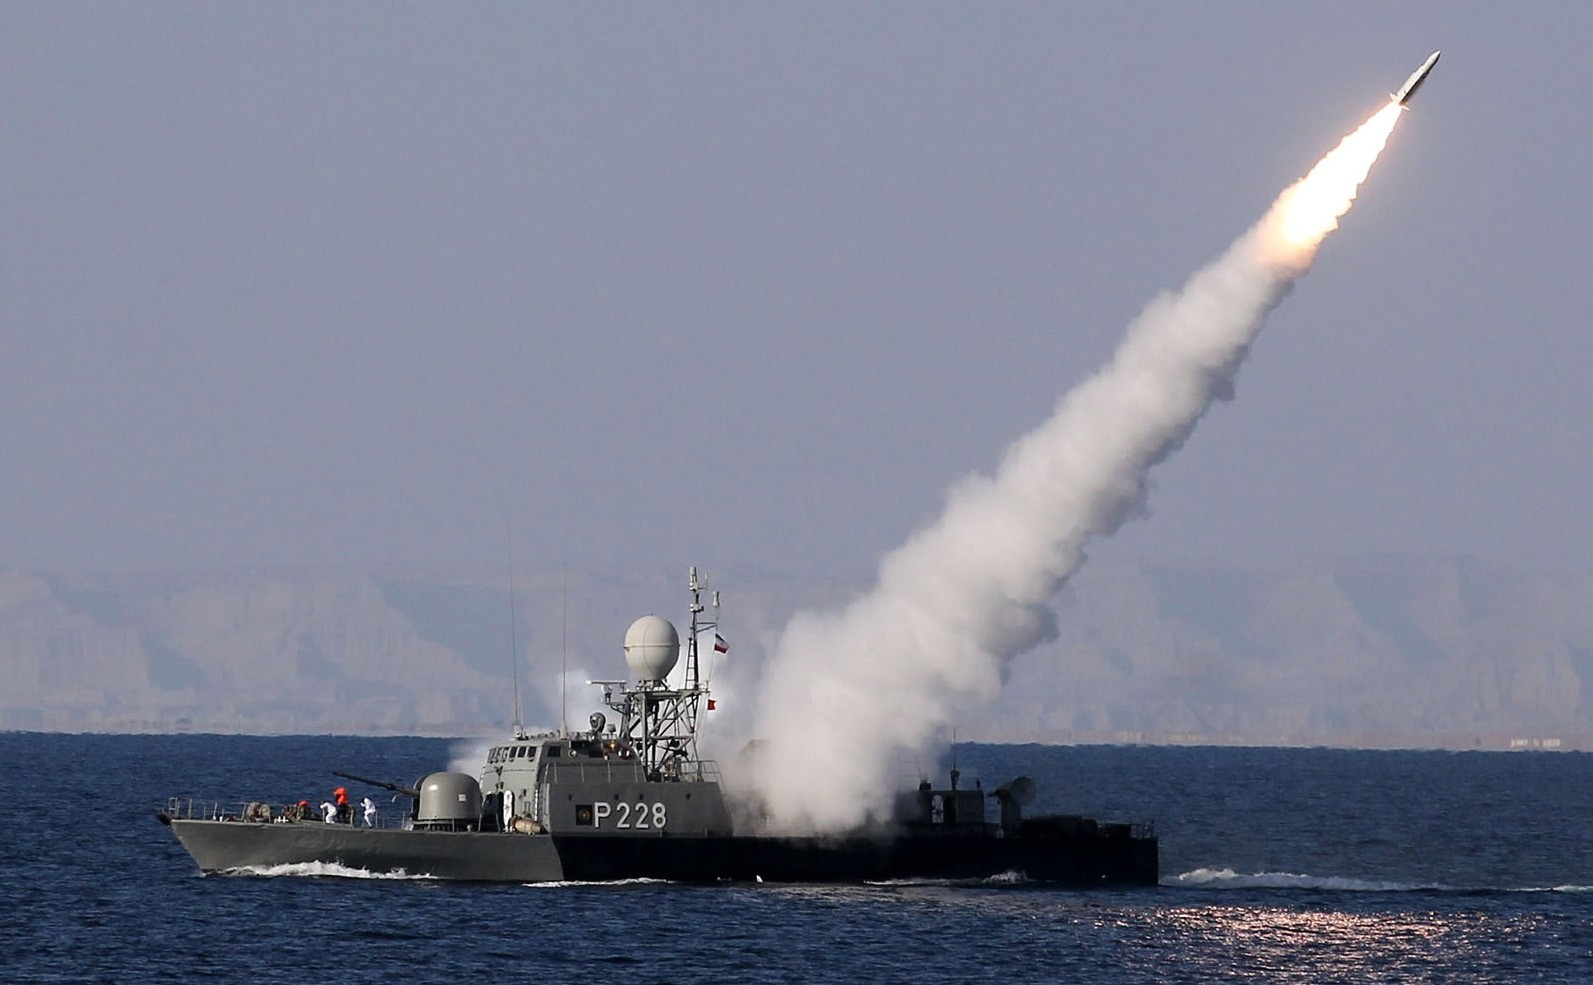 An Iranian navy warship test fires a new long range missile during the Iranian navy military exercise on the Sea of Oman, near the Strait of Hormuz in southern Iran.